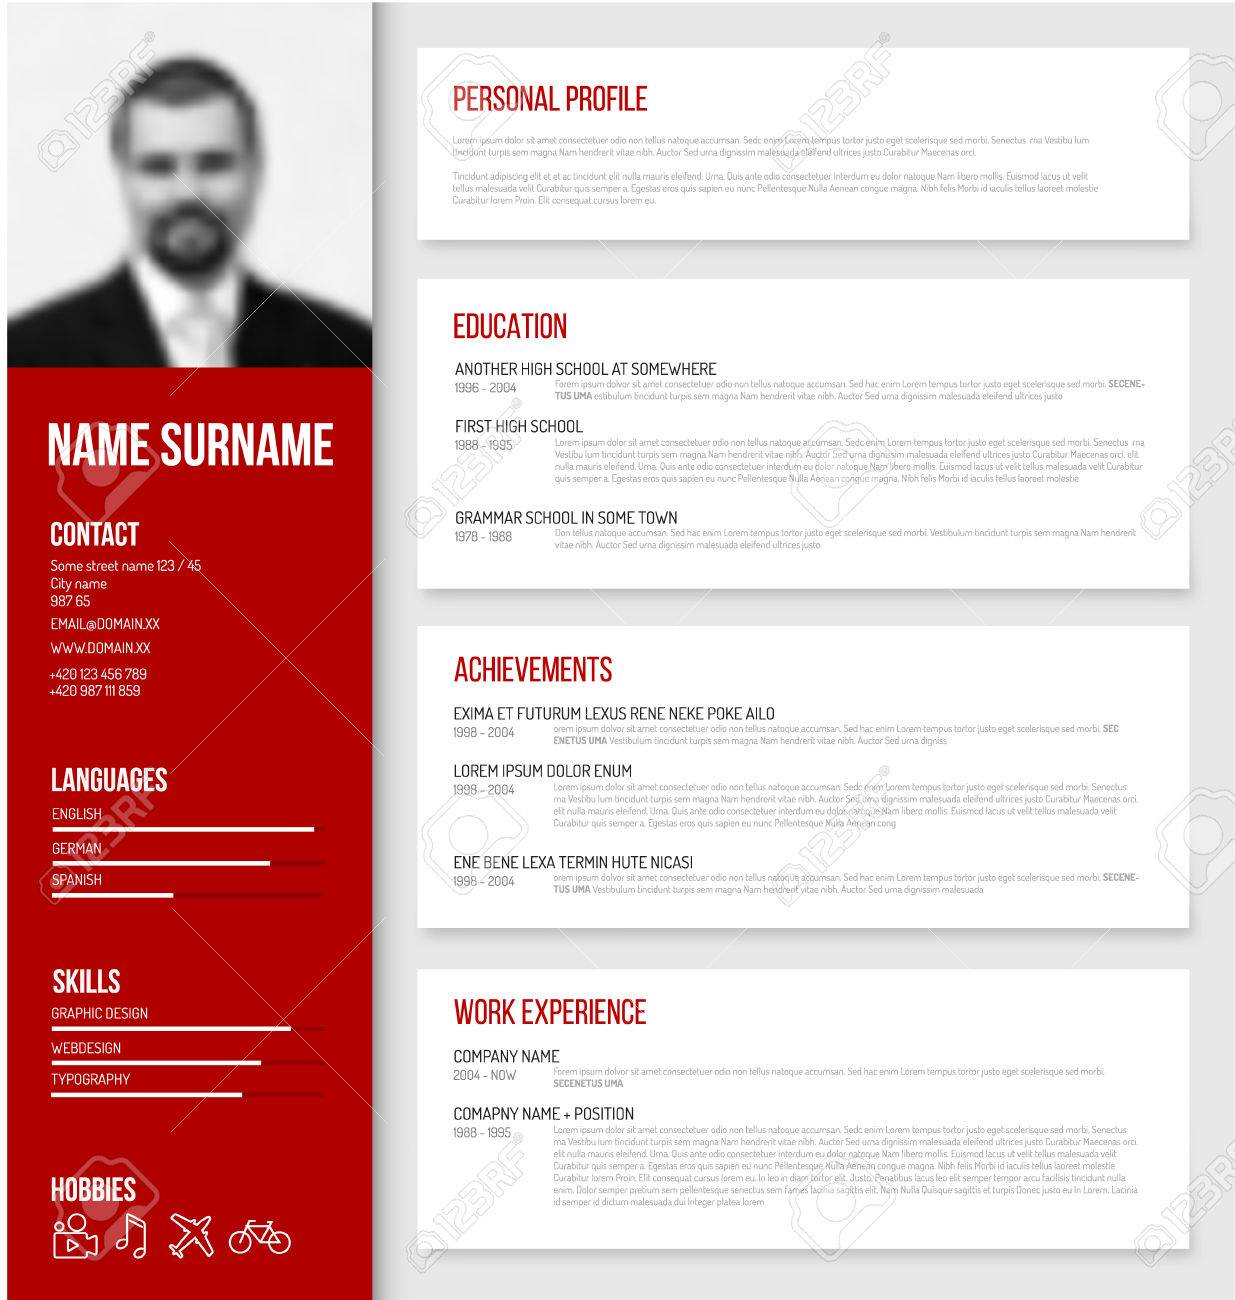 Vector minimalist cv / resume template design with profile photo - red version - 45852683